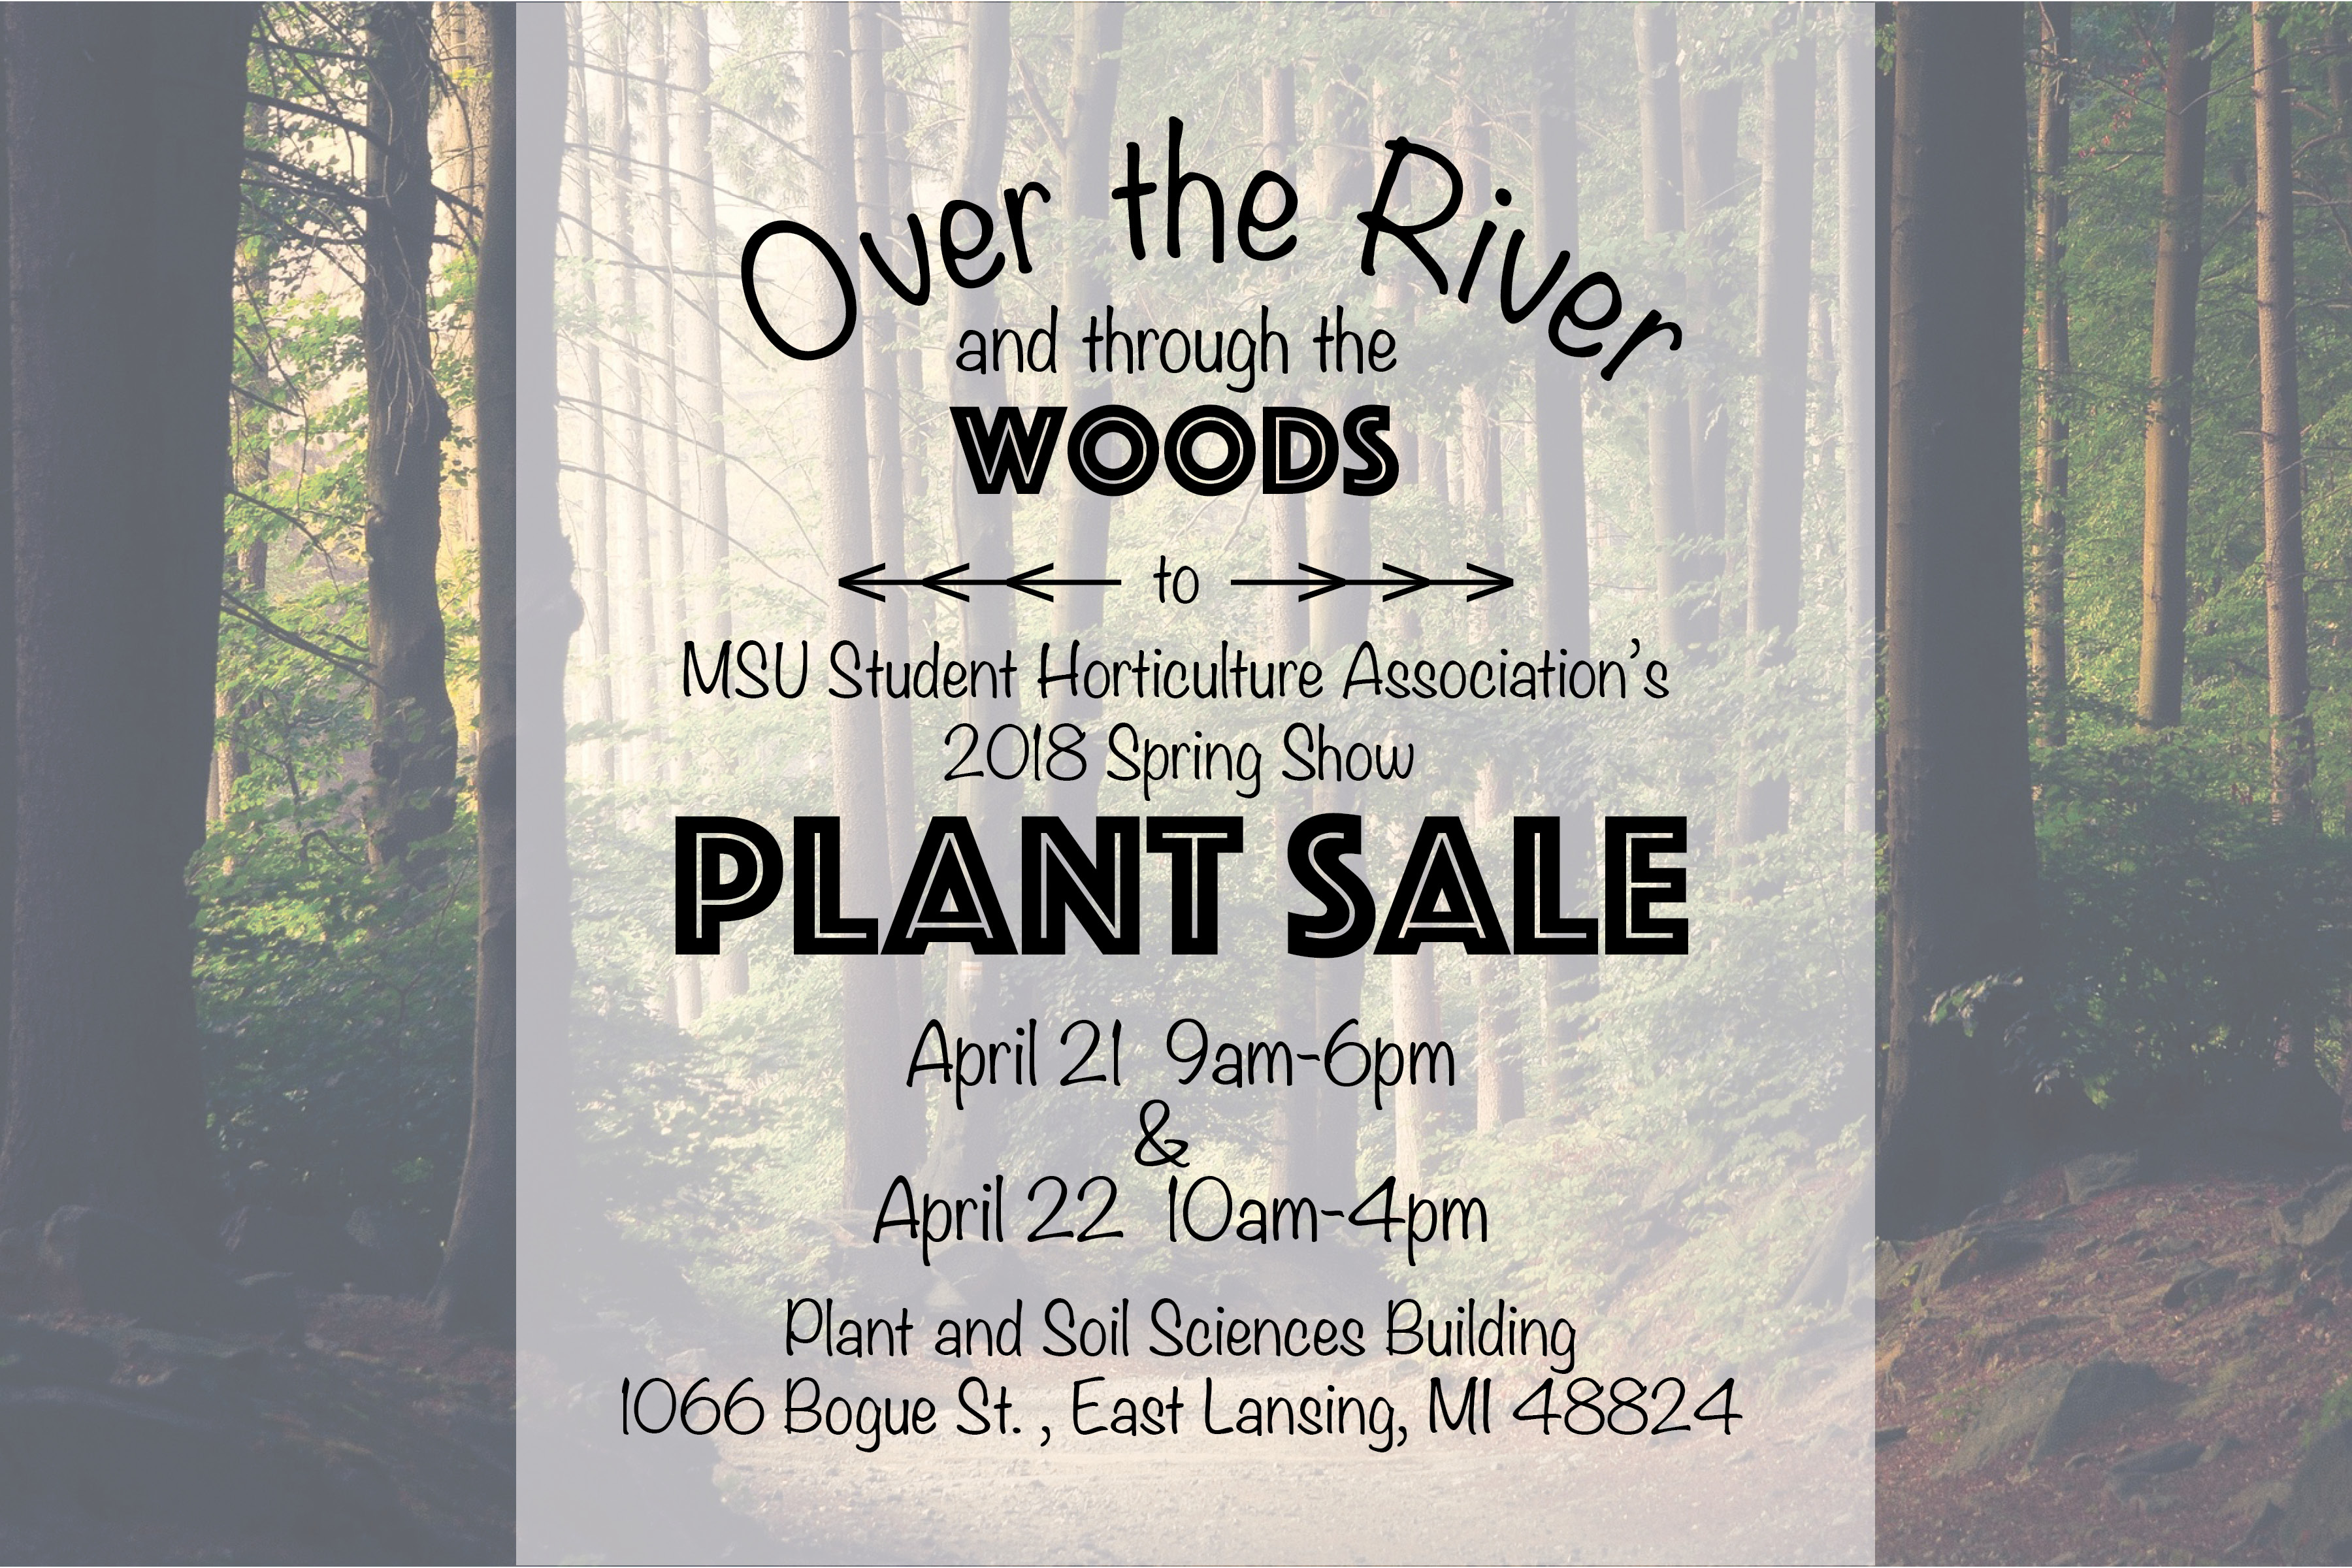 Post card about Plant Sale